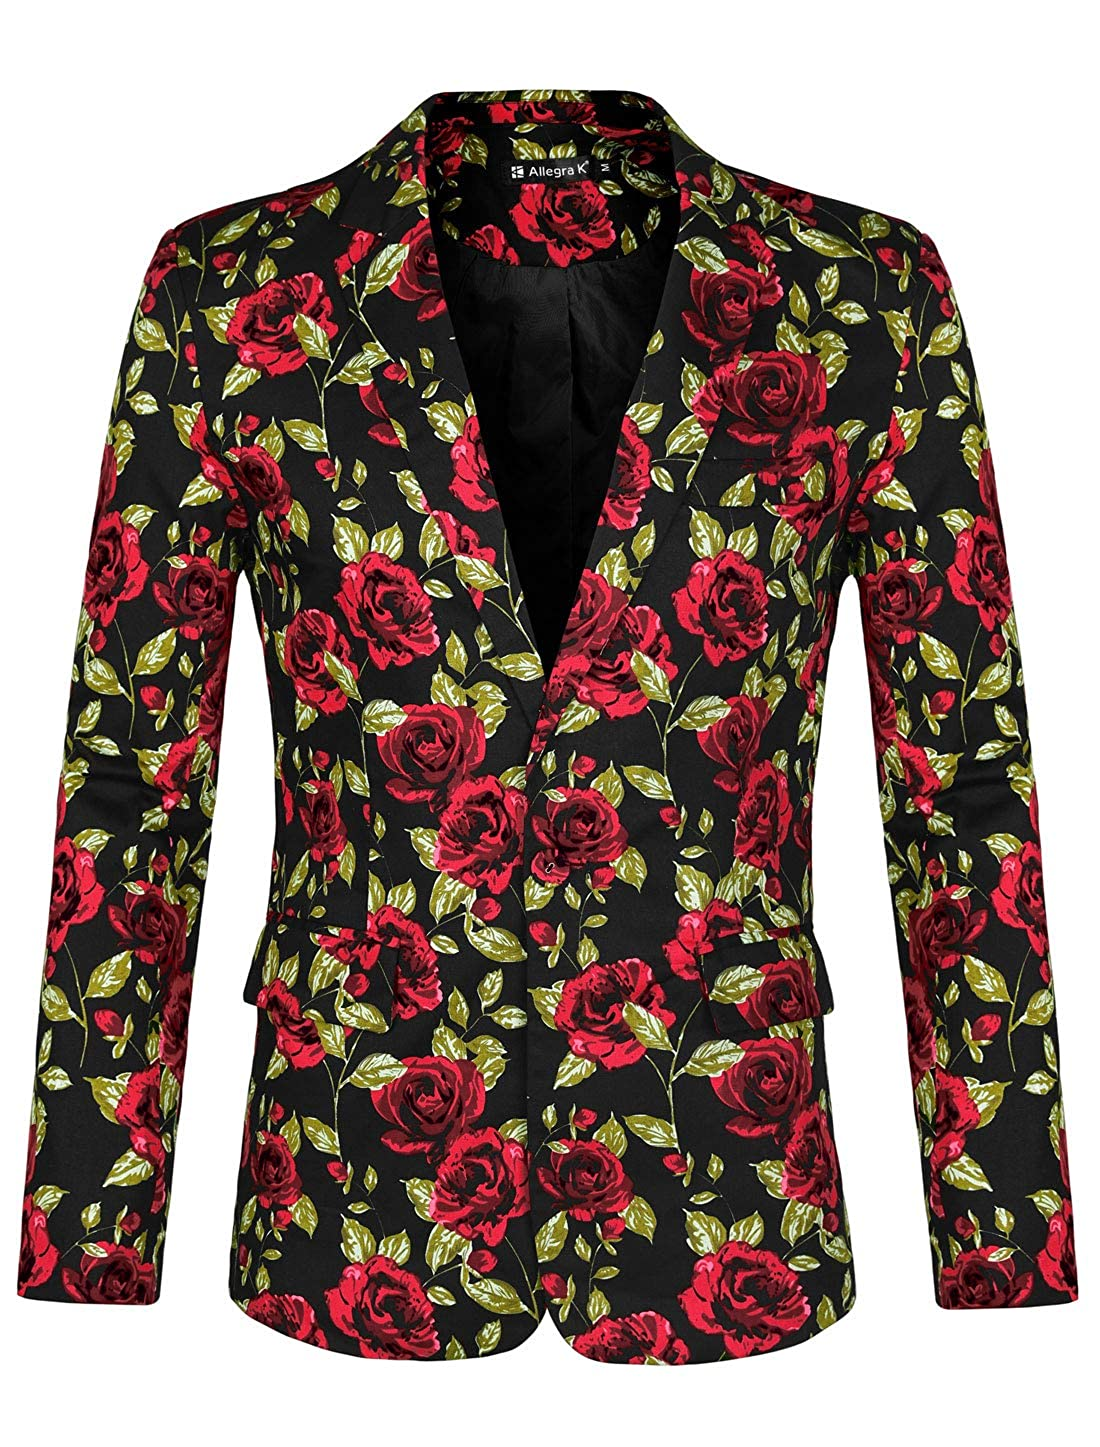 uxcell Mens Suit Blazer Slim Fit Floral Printed One Button Prom Jacket Sport Coat